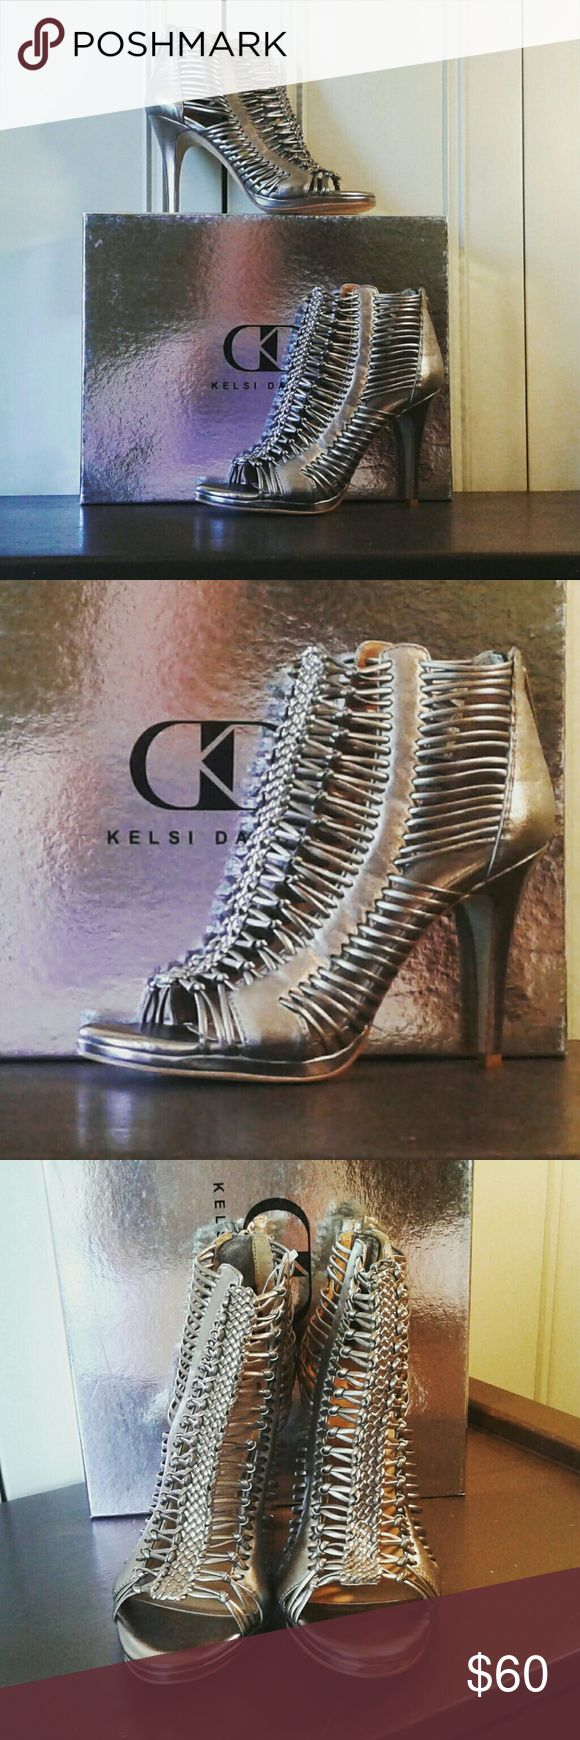 NIB Kelsi Dagger Frayne Pewter Leather Caged Kelsi Dagger Frayne Pewter Leather High Heel Sandals. Zip up back. New in box. Kelsi Dagger Shoes Ankle Boots & Booties